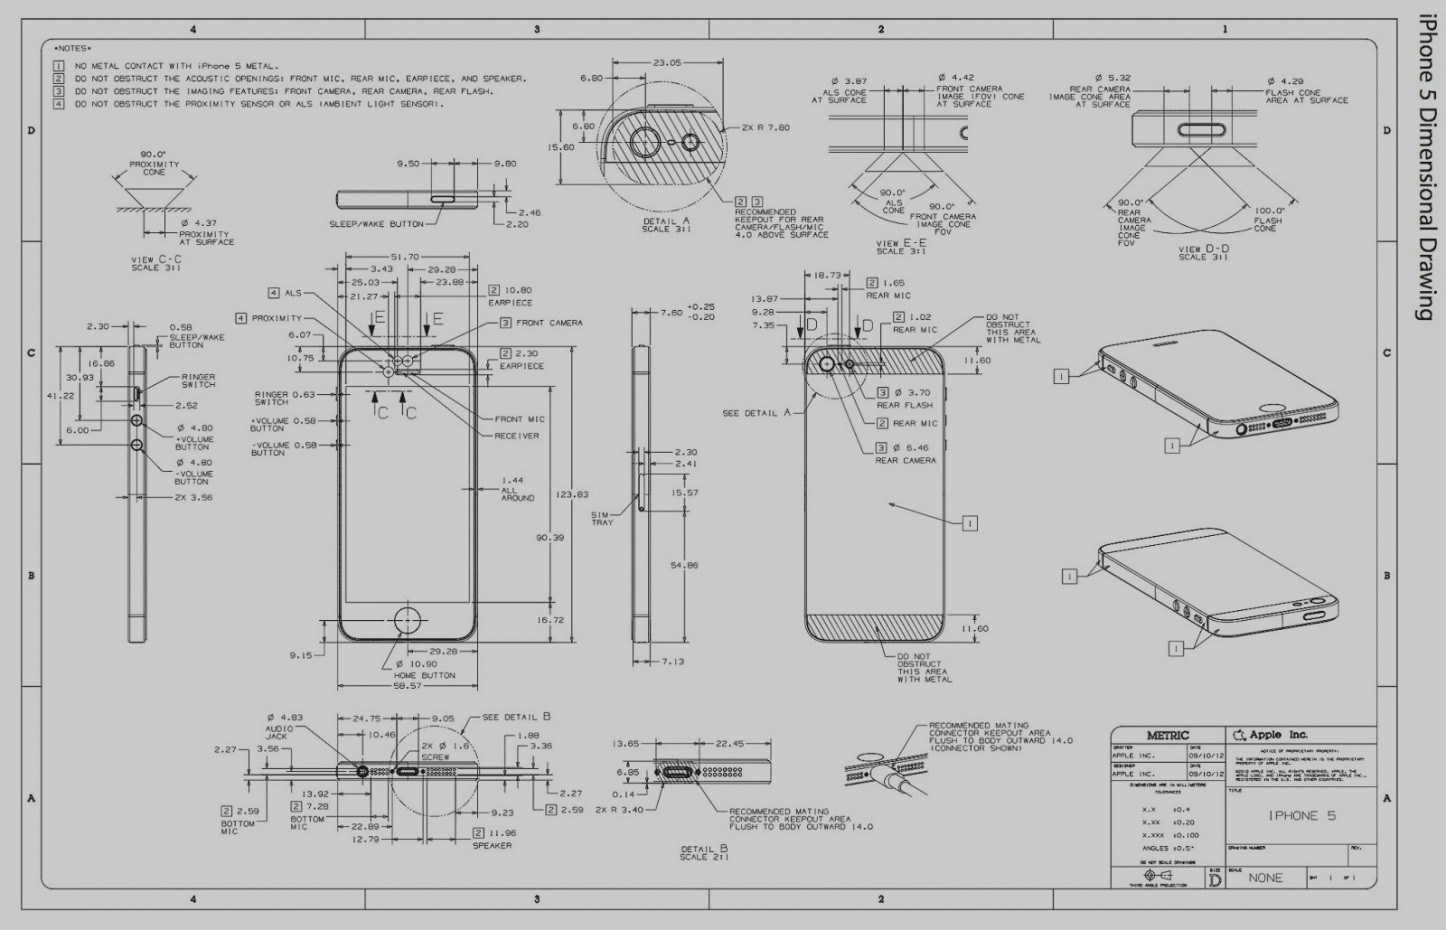 Iphone Headset Wiring Diagram Schematic Awesome Gallery Schematics Searchable Of 1446x930